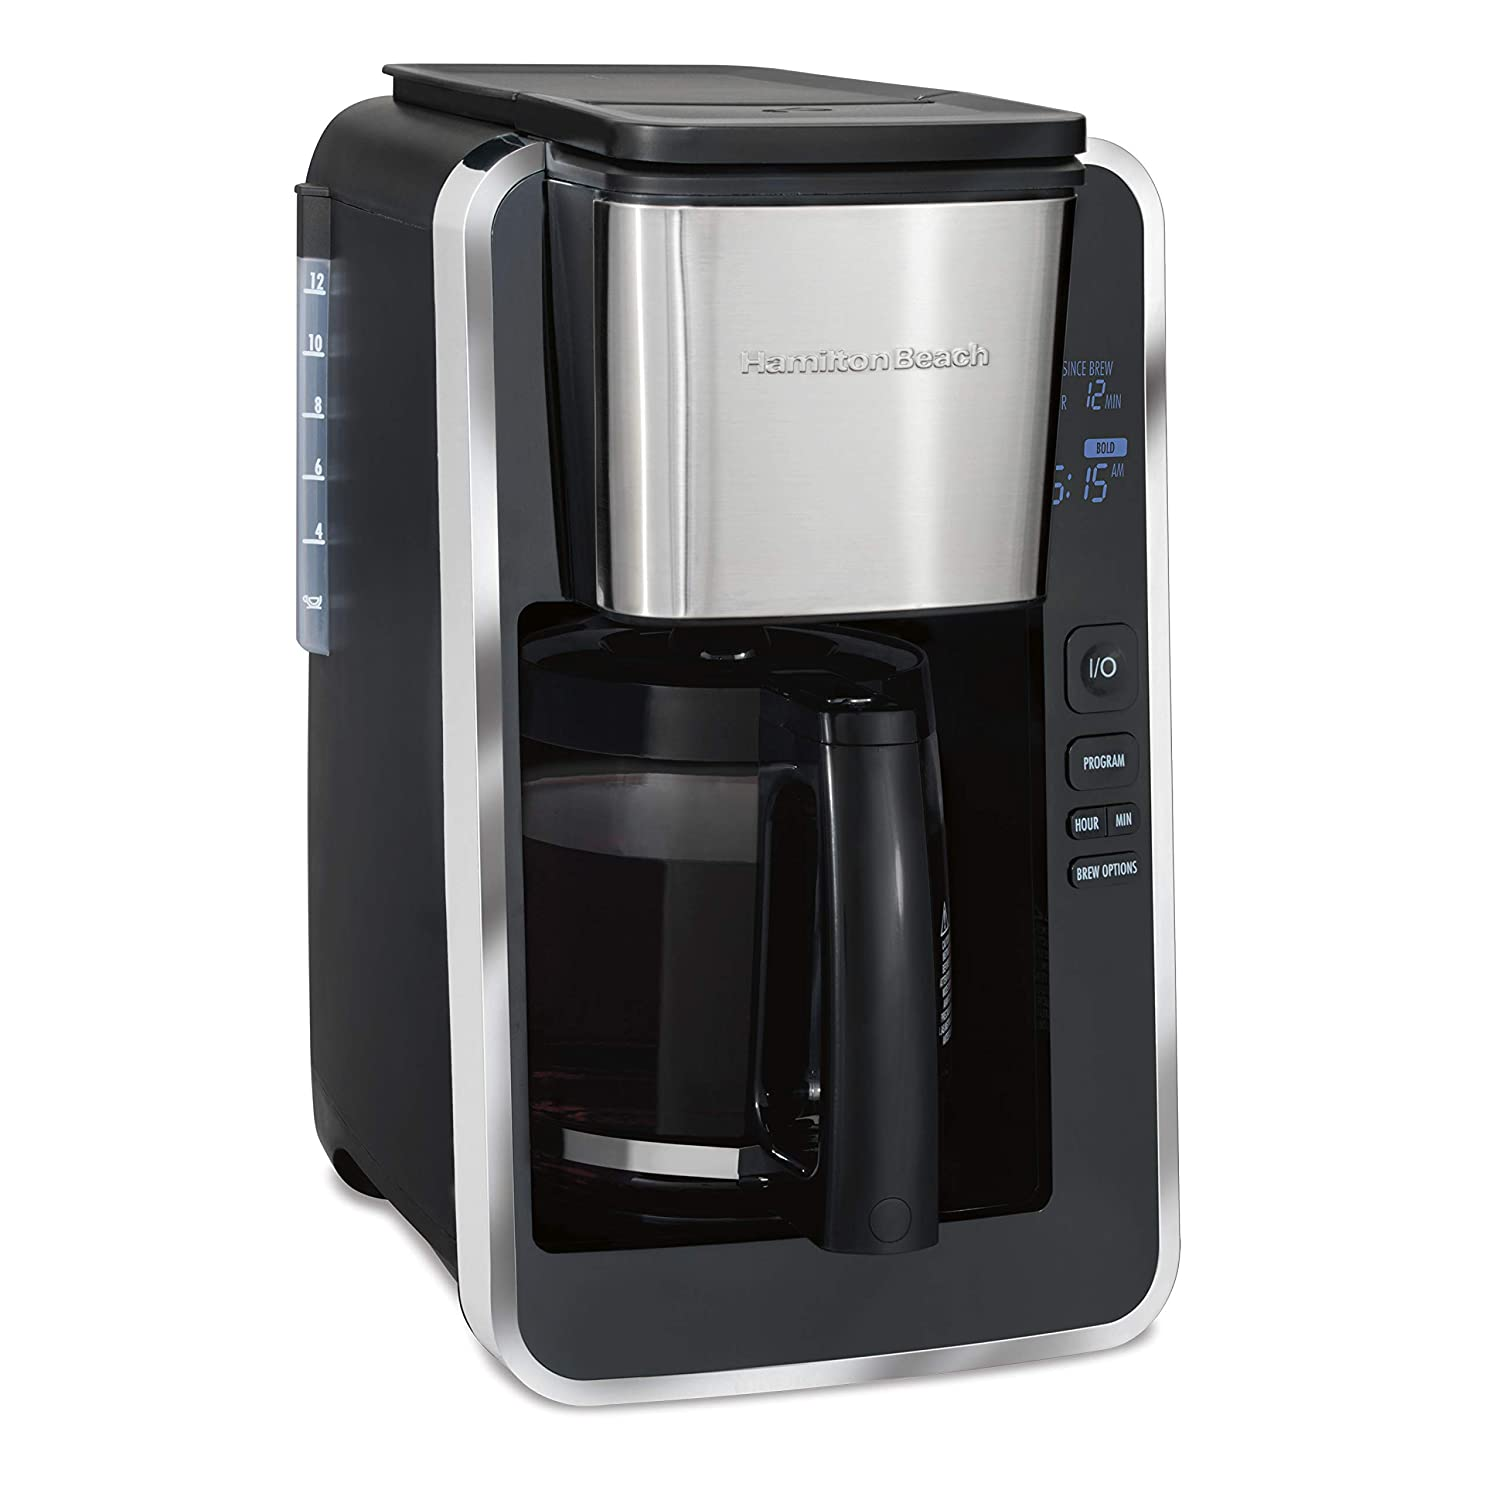 Hamilton Beach 46320 Easy Access Deluxe Programmable Coffee Maker Black